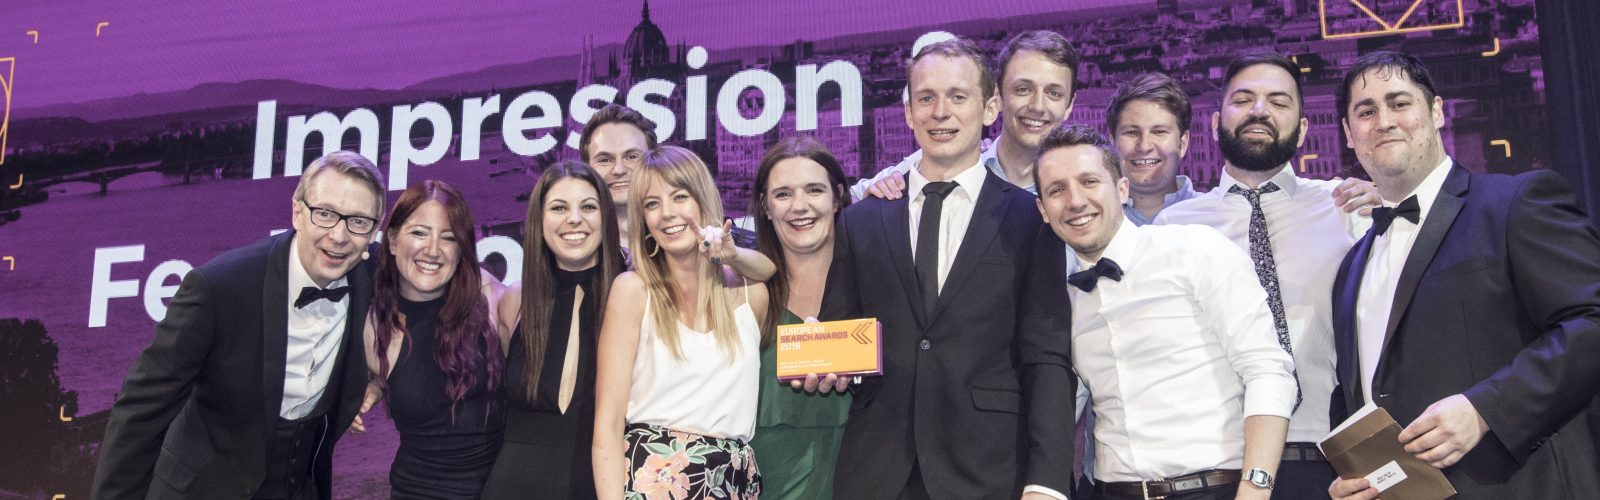 Impression European Search Awards 2019 Large